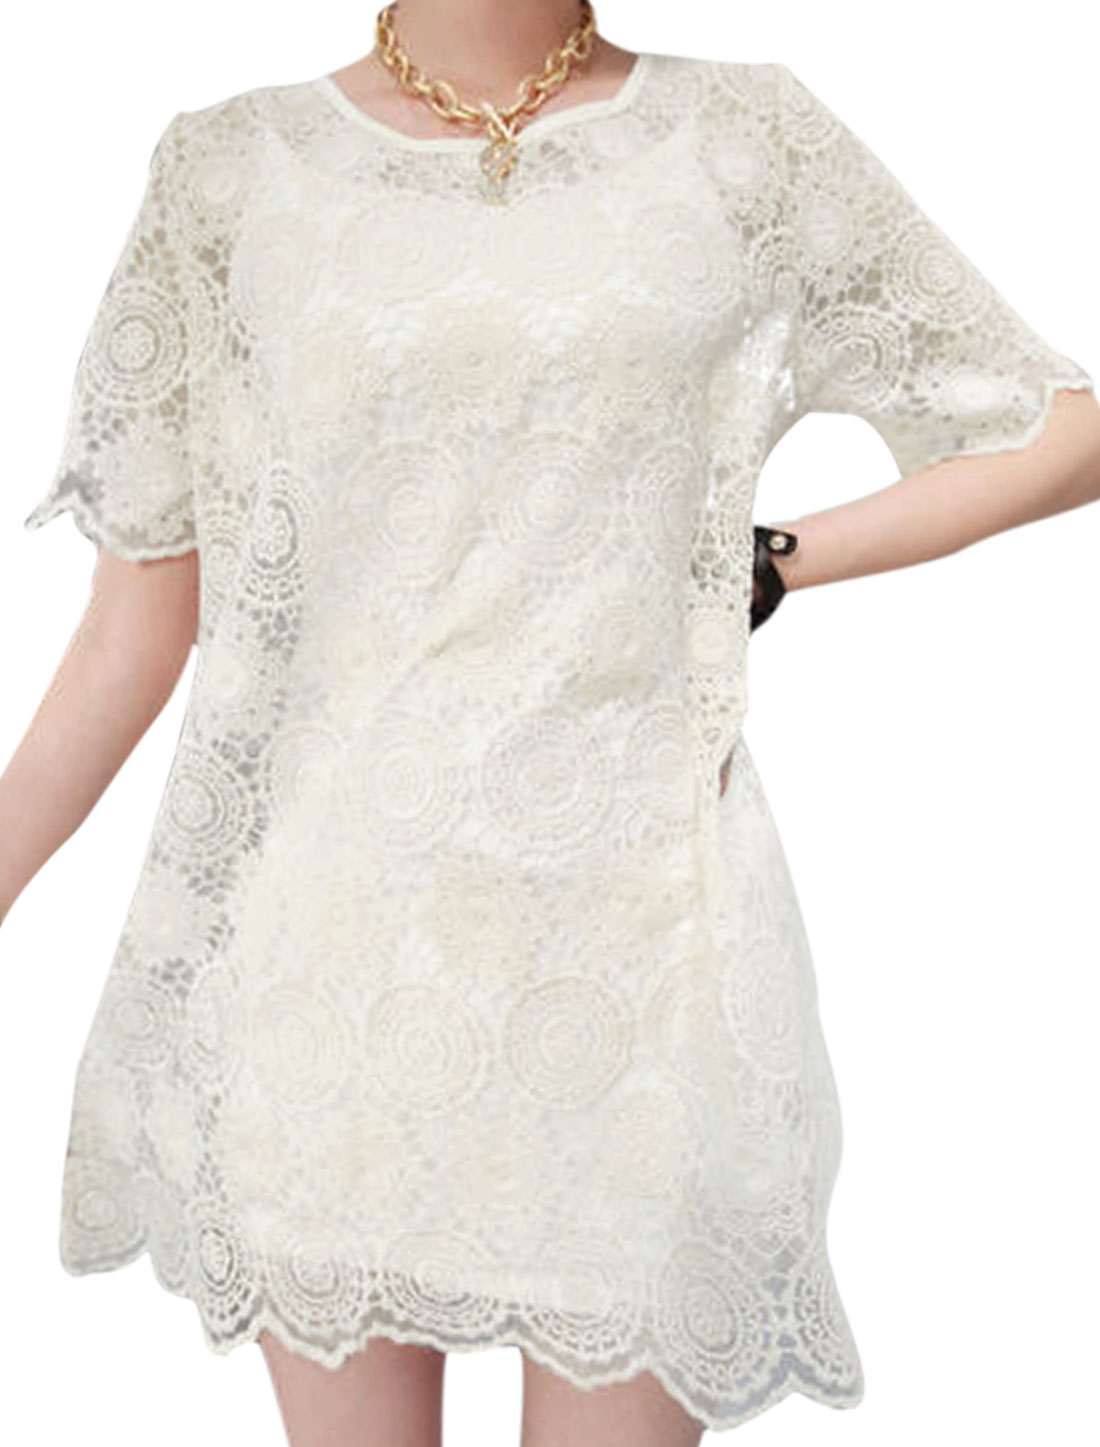 Lady Round Neck Irregular Hem Crochet Lace Smock Dress Beige XS